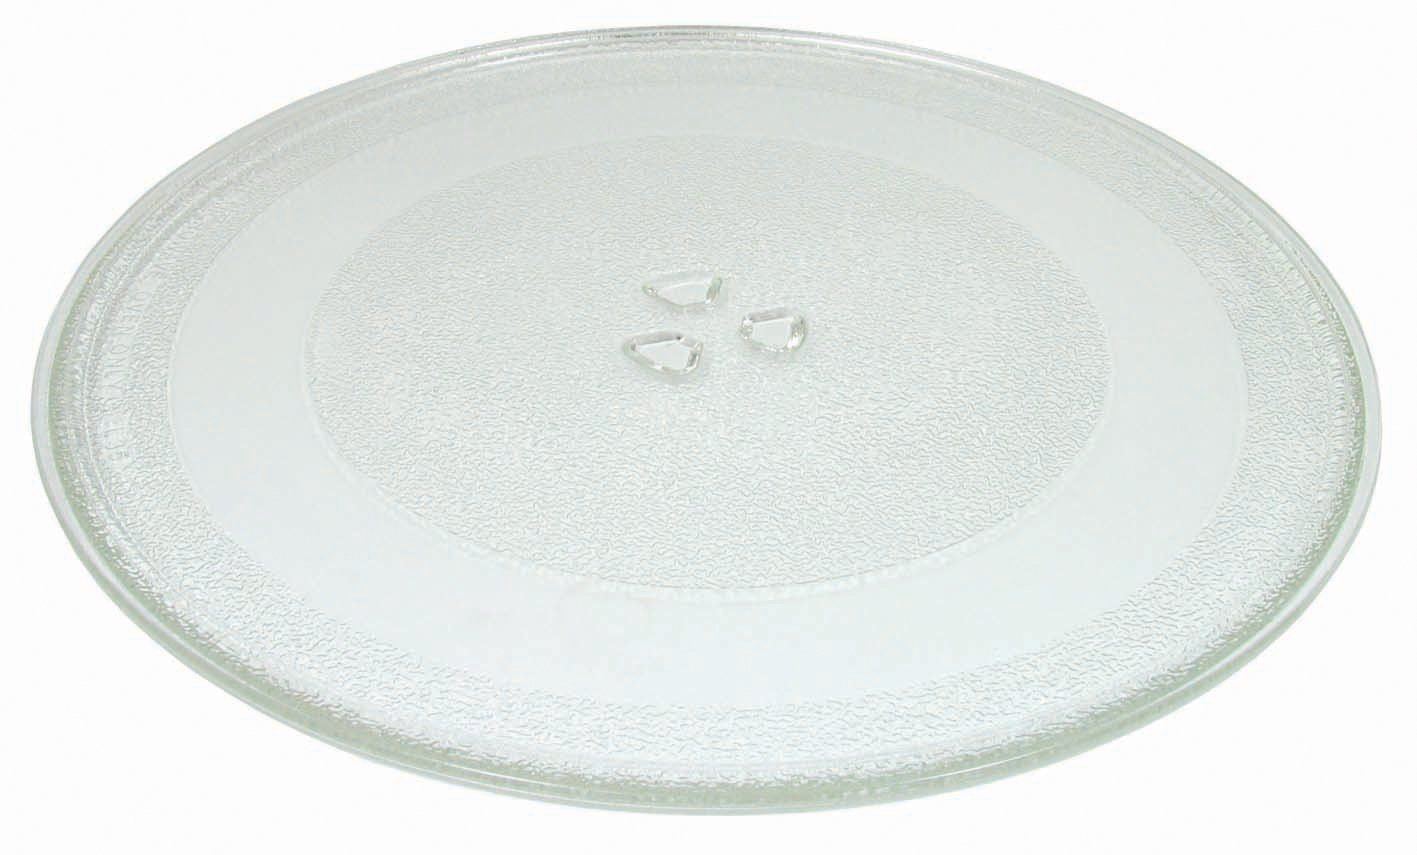 13.5'' or 345mm Samsung Universal Microwave Glass Turntable Plate Cookworks Microwave Ovens